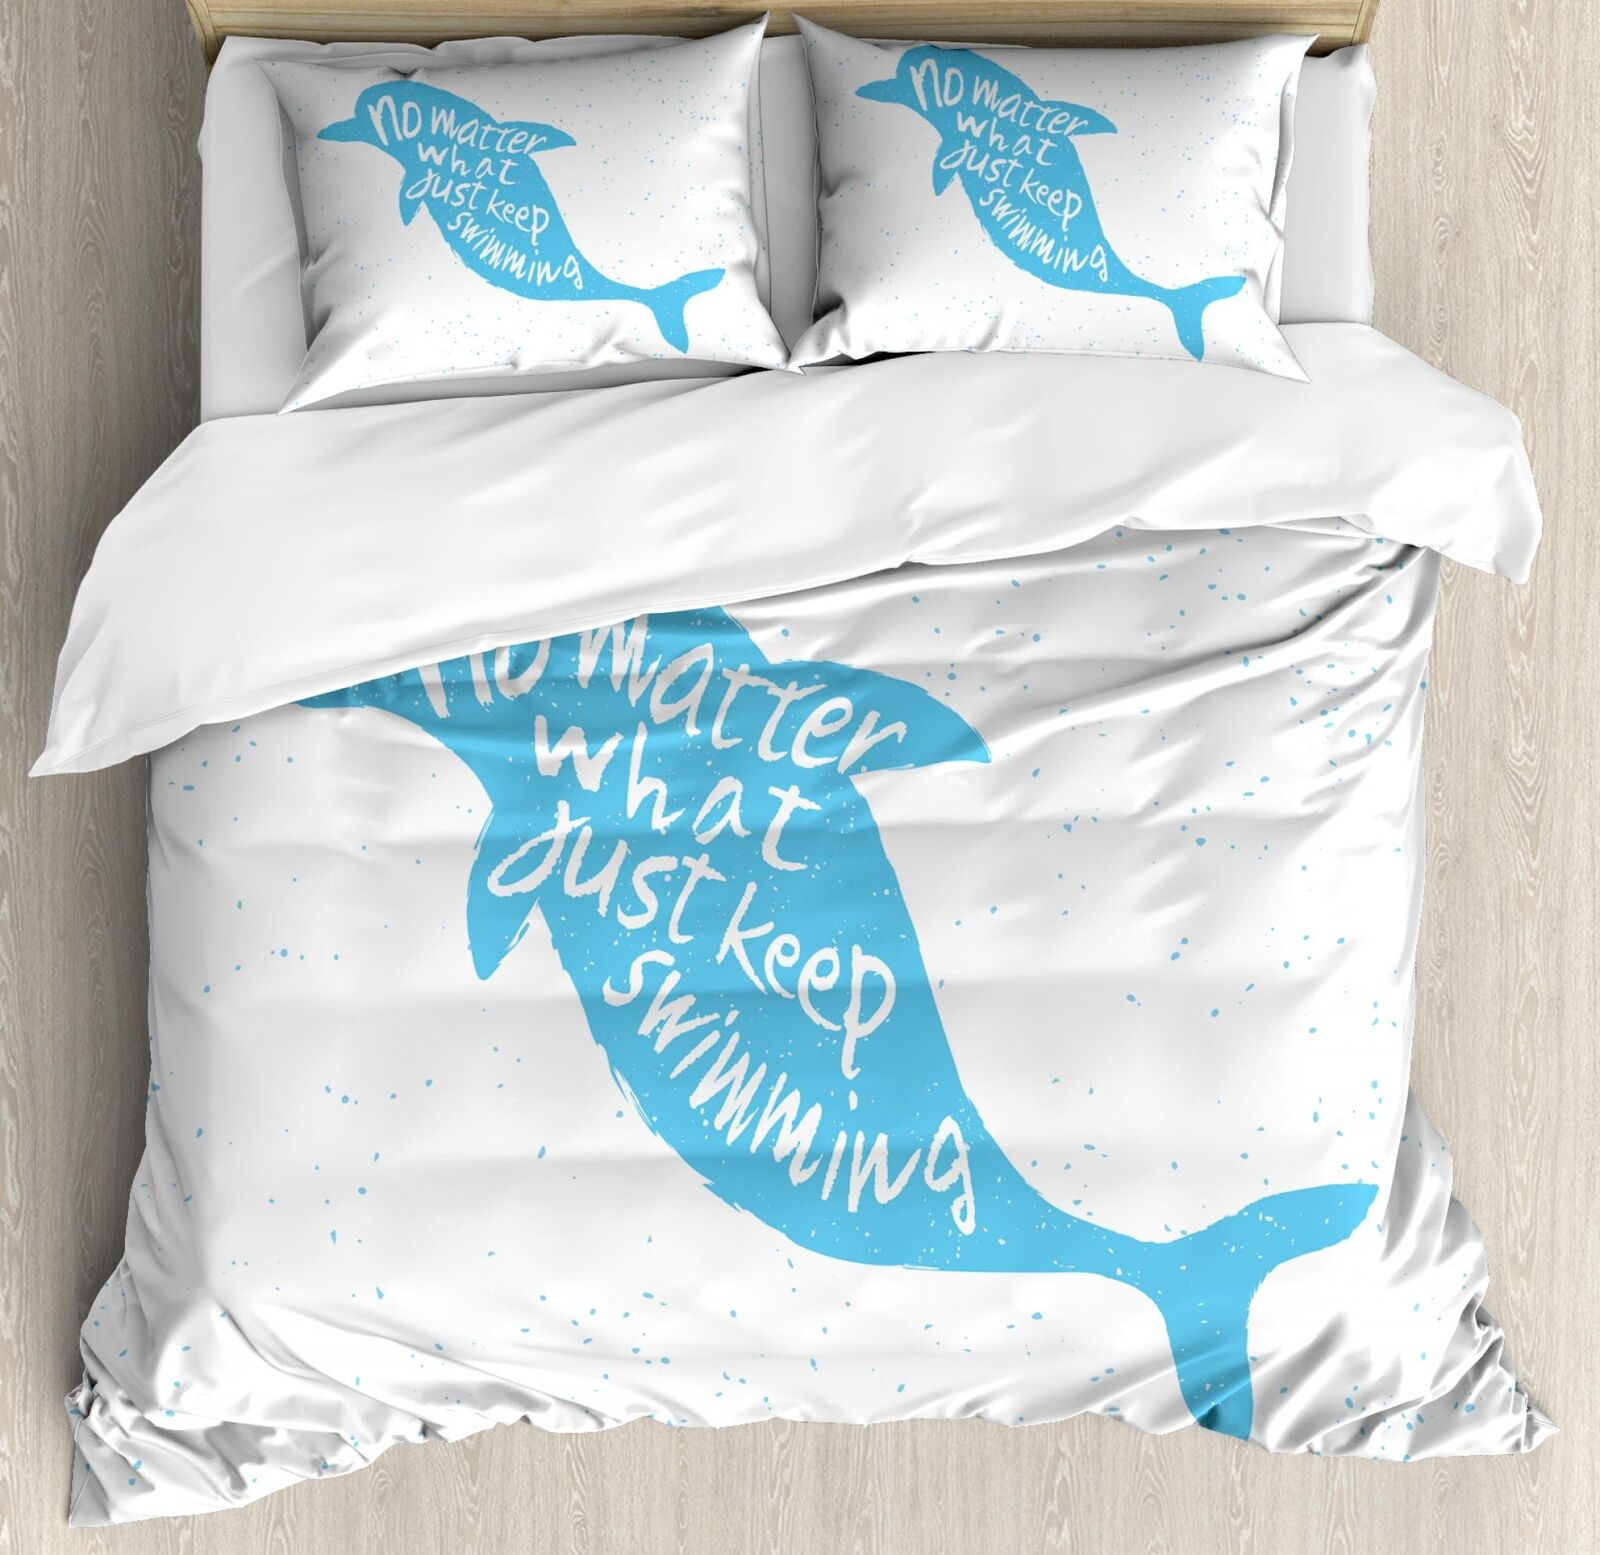 Dolphin Duvet Cover Set Twin Queen King Dimensiones with Pillow Shams Ambesonne